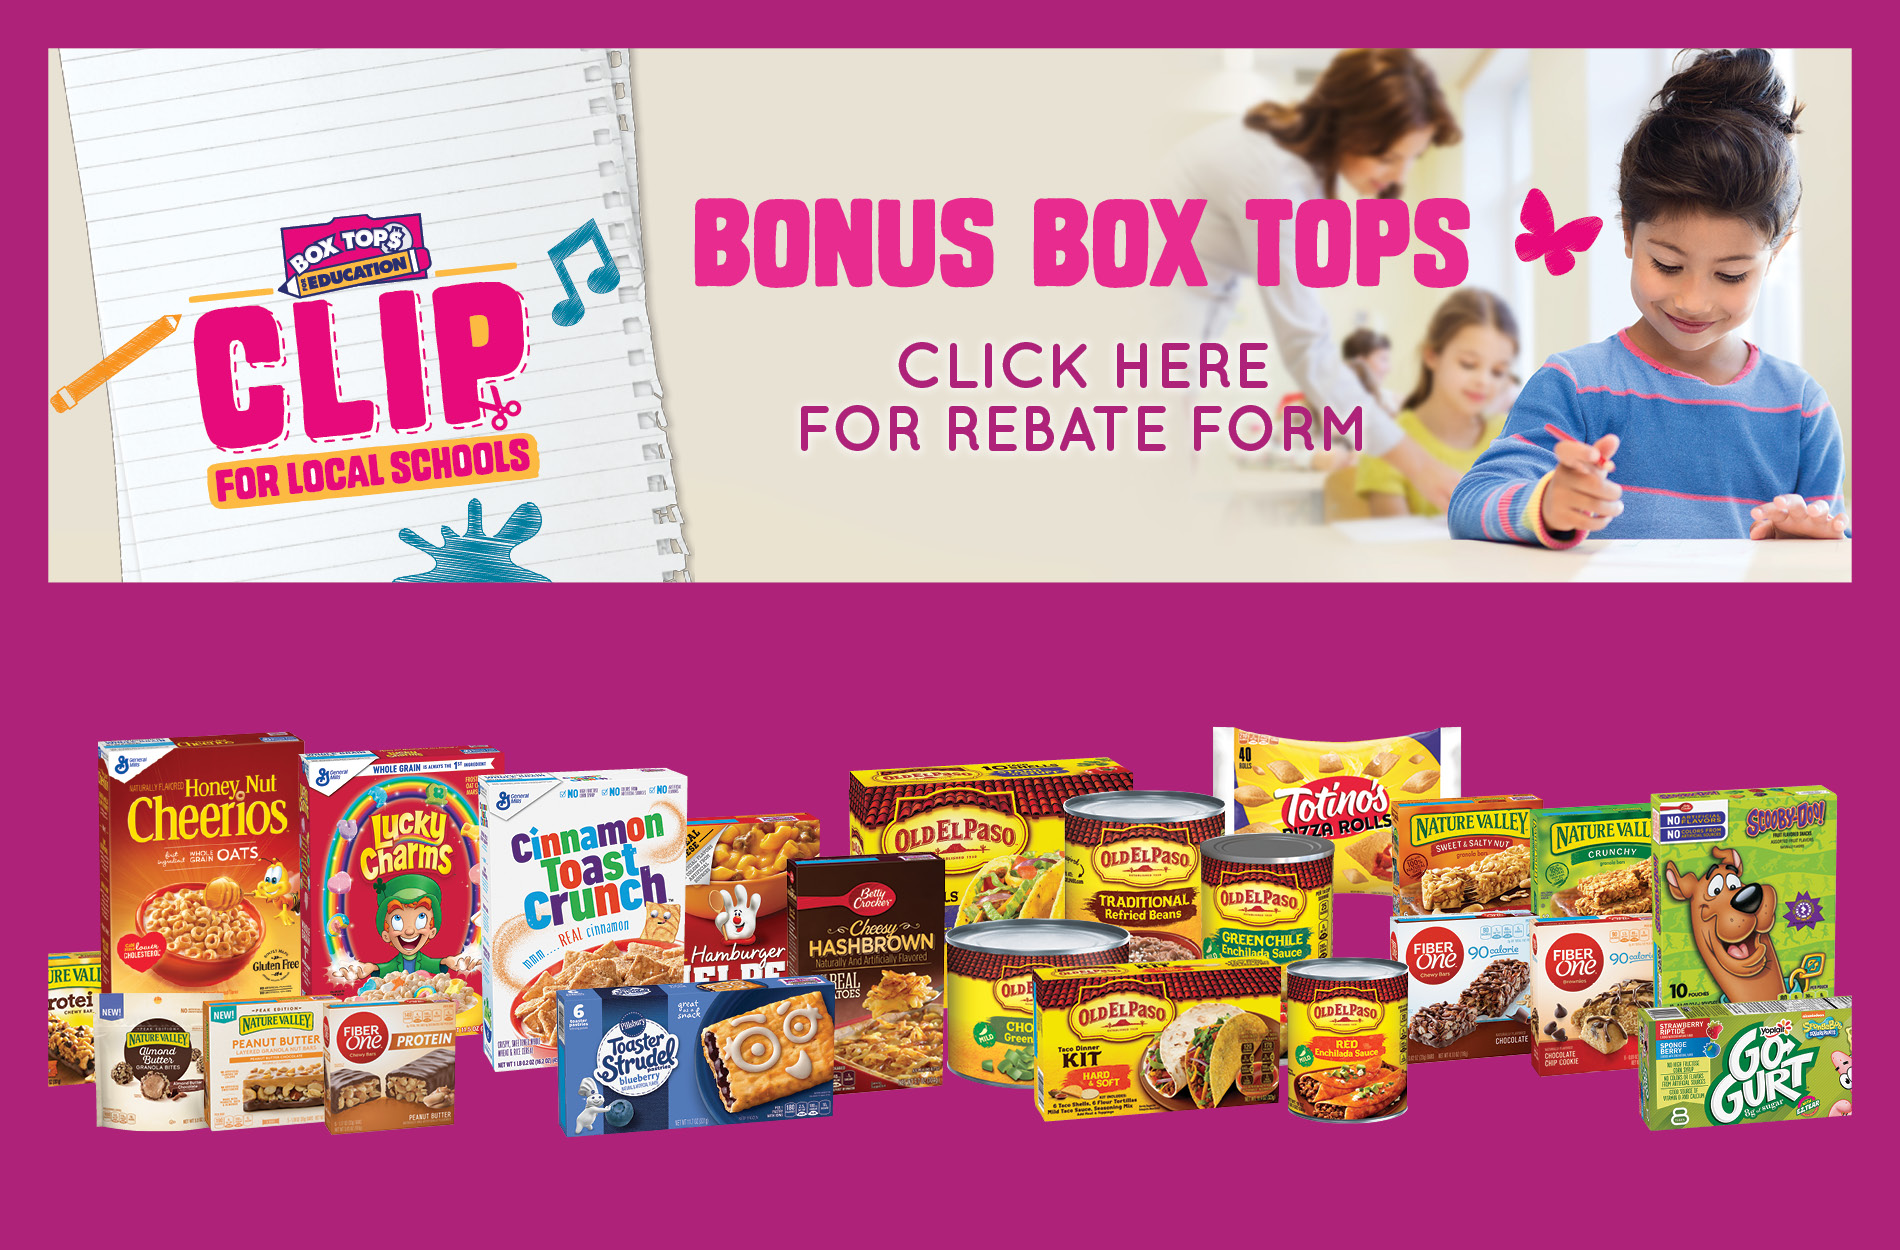 Box Tops Rebate Form